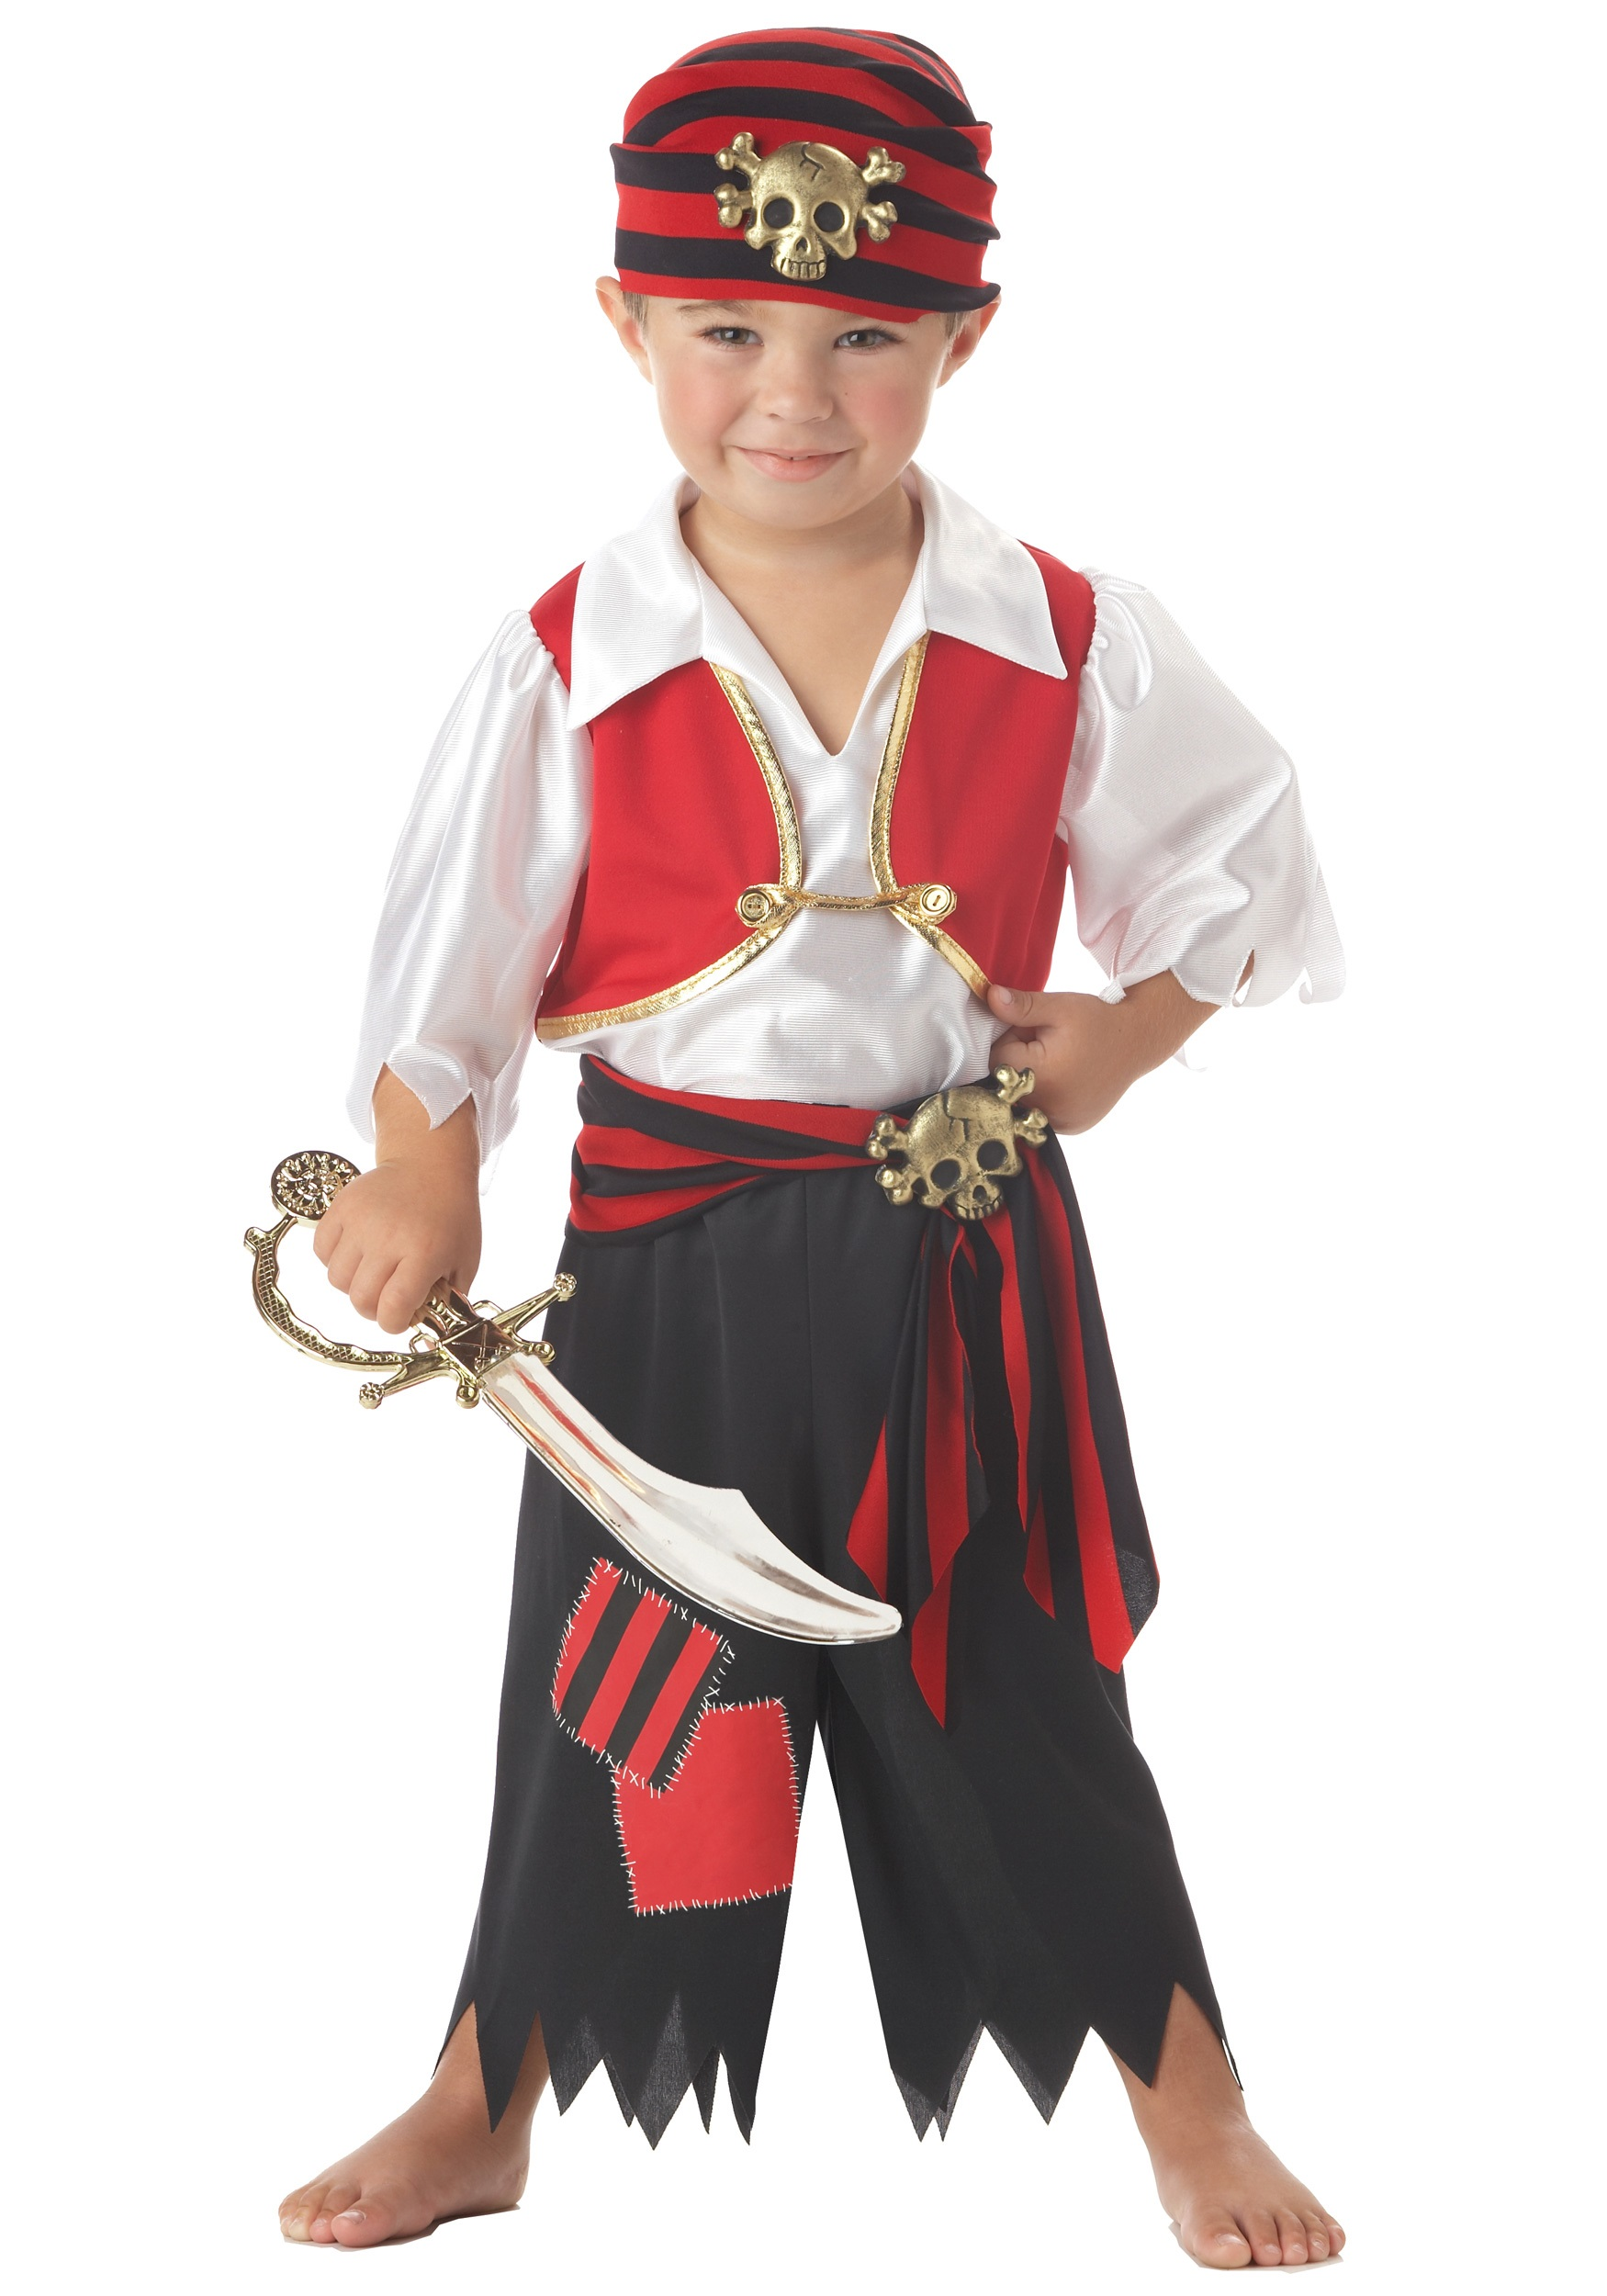 Pirate costumes for adults kids toddler ahoy matey pirate costume solutioingenieria Choice Image